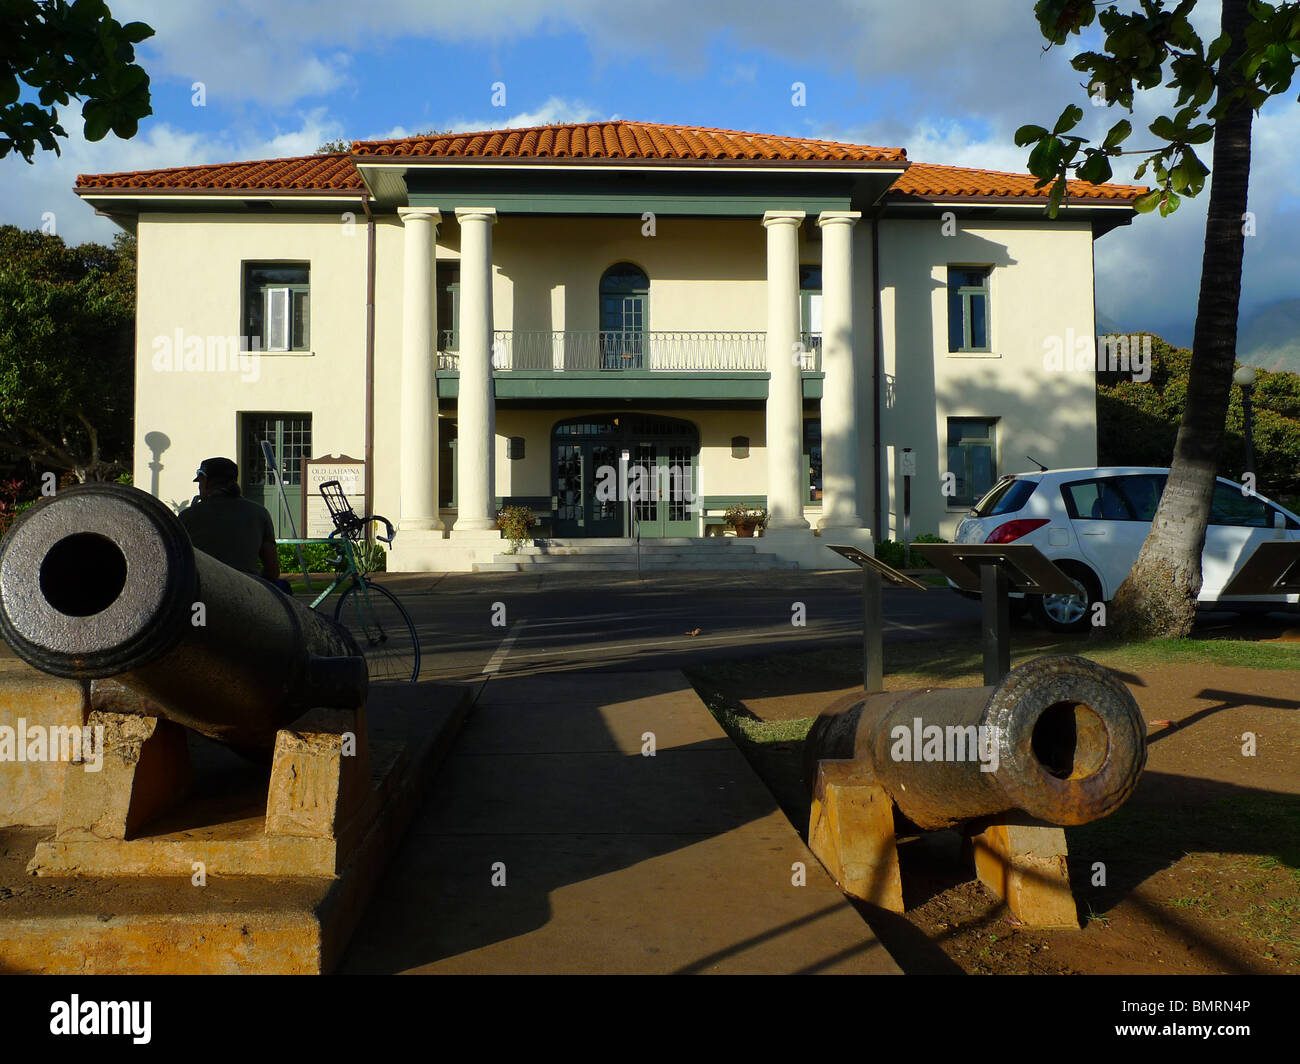 Old Courthouse,Lahaina, Maui, Hawaii - Stock Image